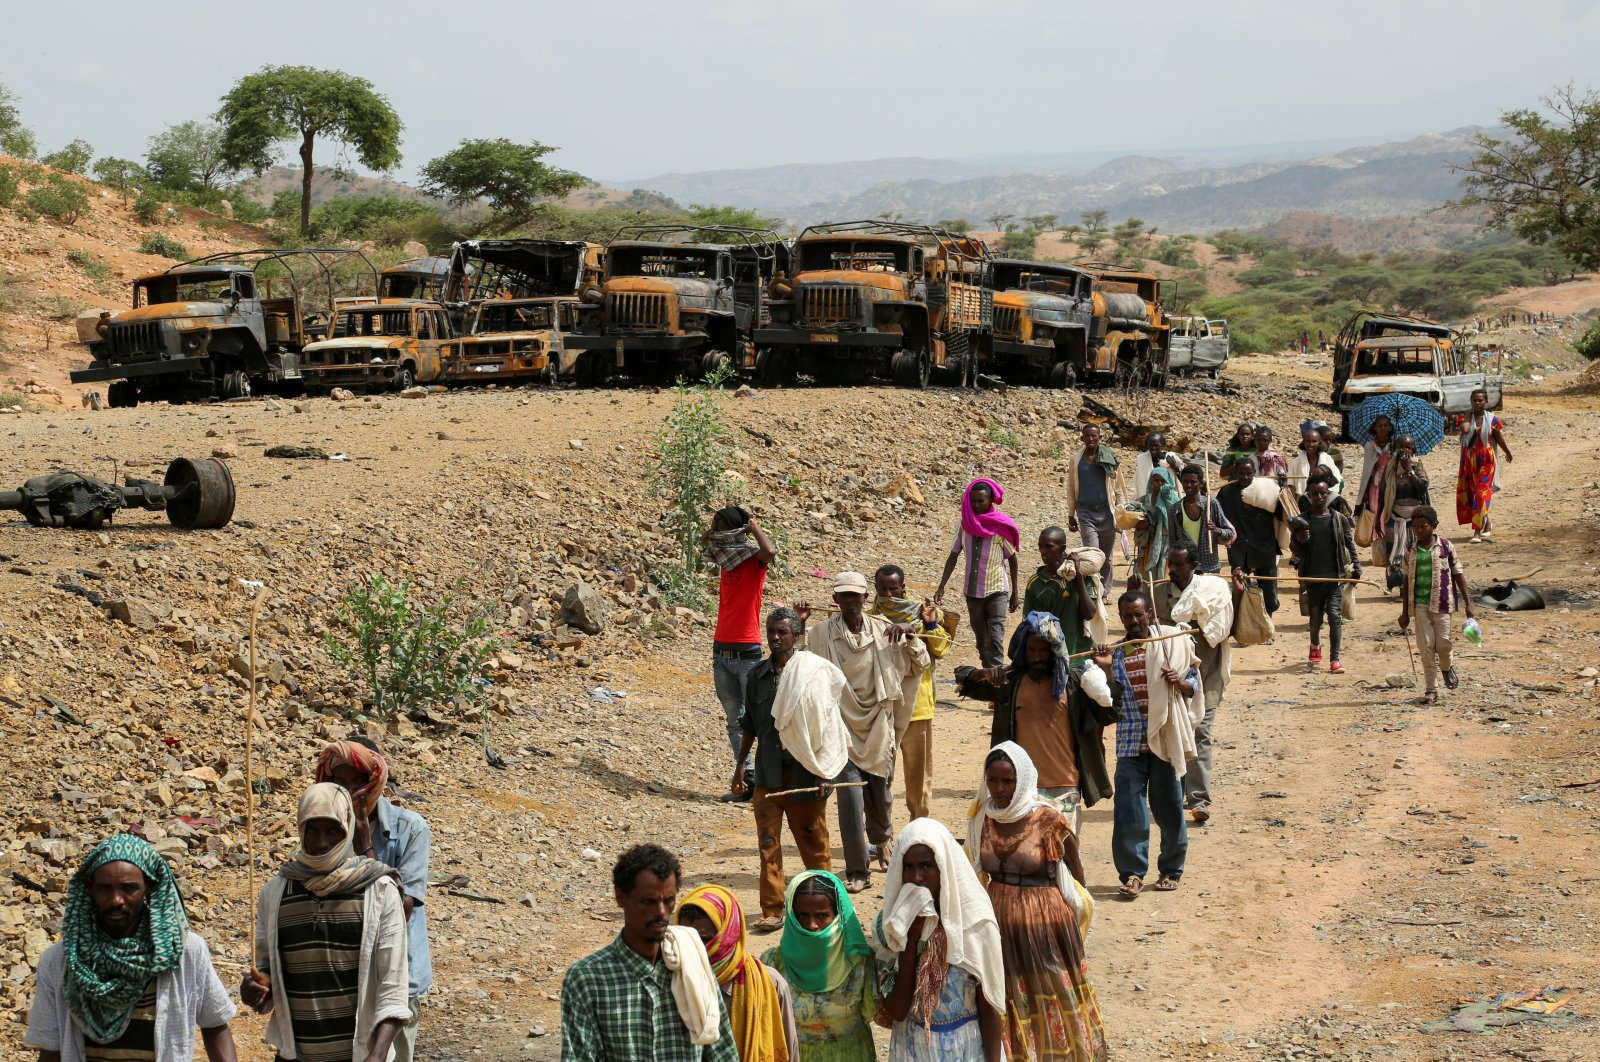 Villagers return from a market to Yechila town in south central Tigray walking past scores of burned vehicles, in Tigray, Ethiopia, July 10, 2021. (Reuters Photo)